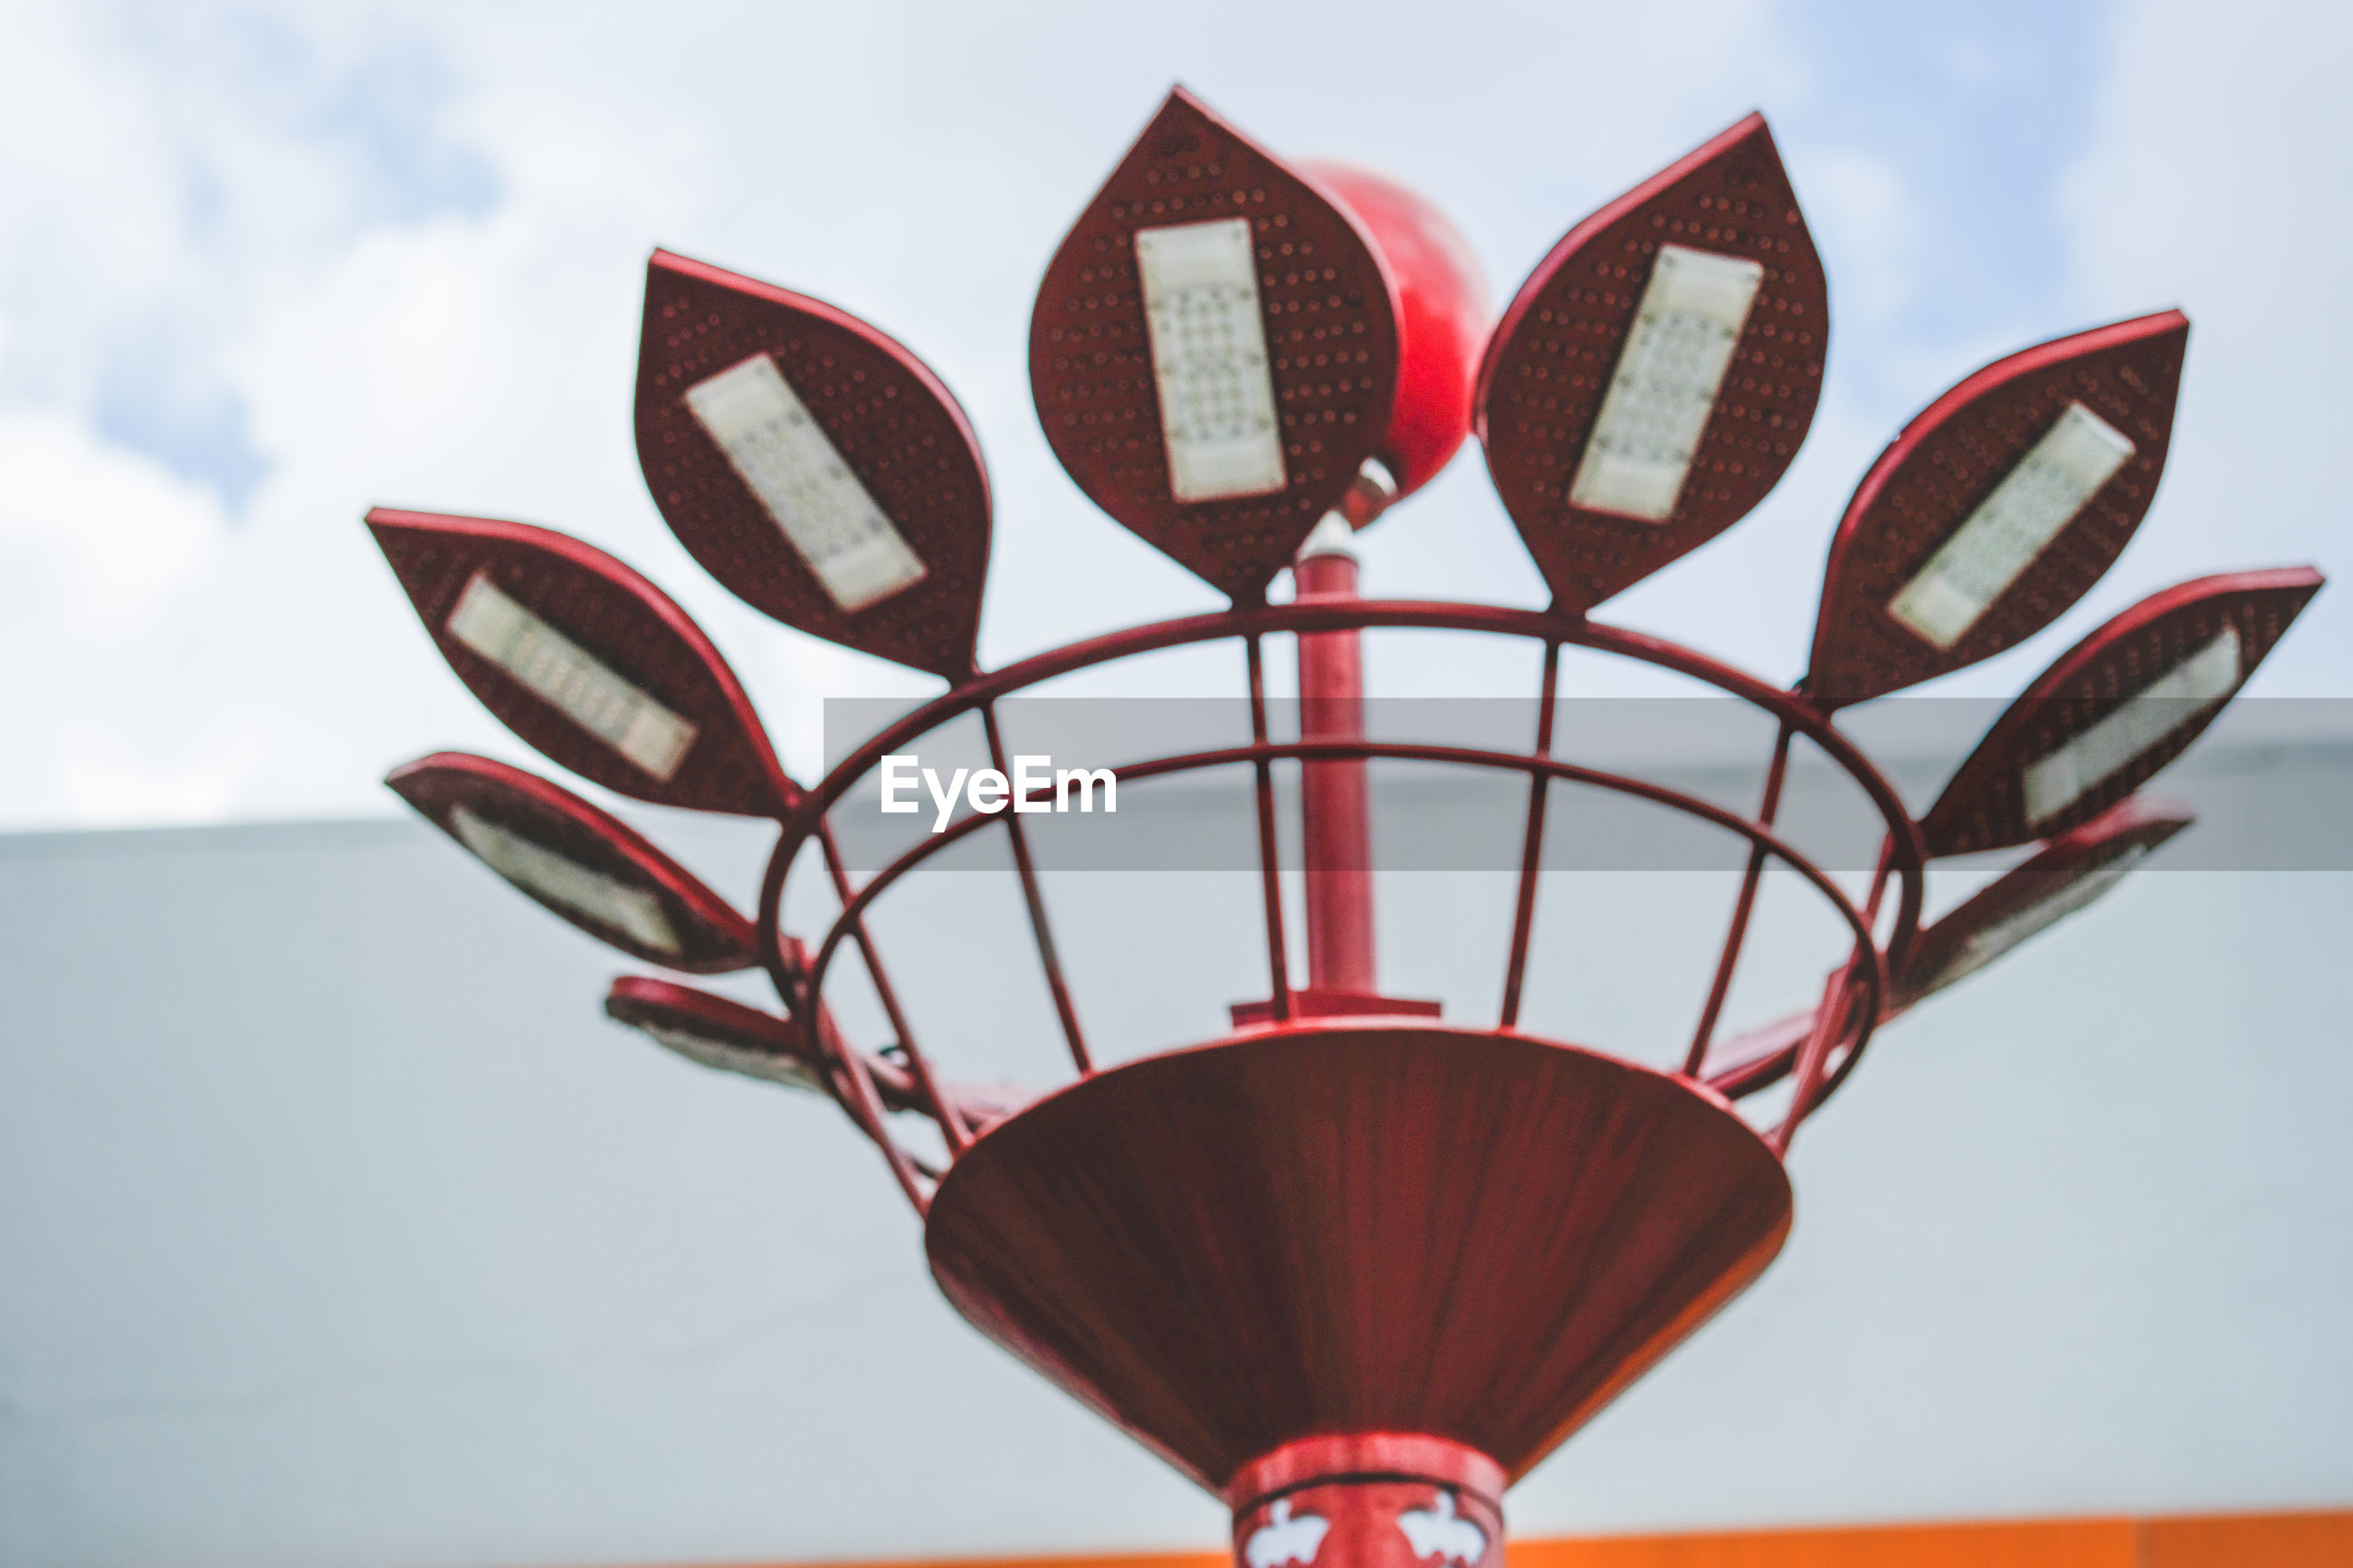 Low angle view of lamp lights against sky